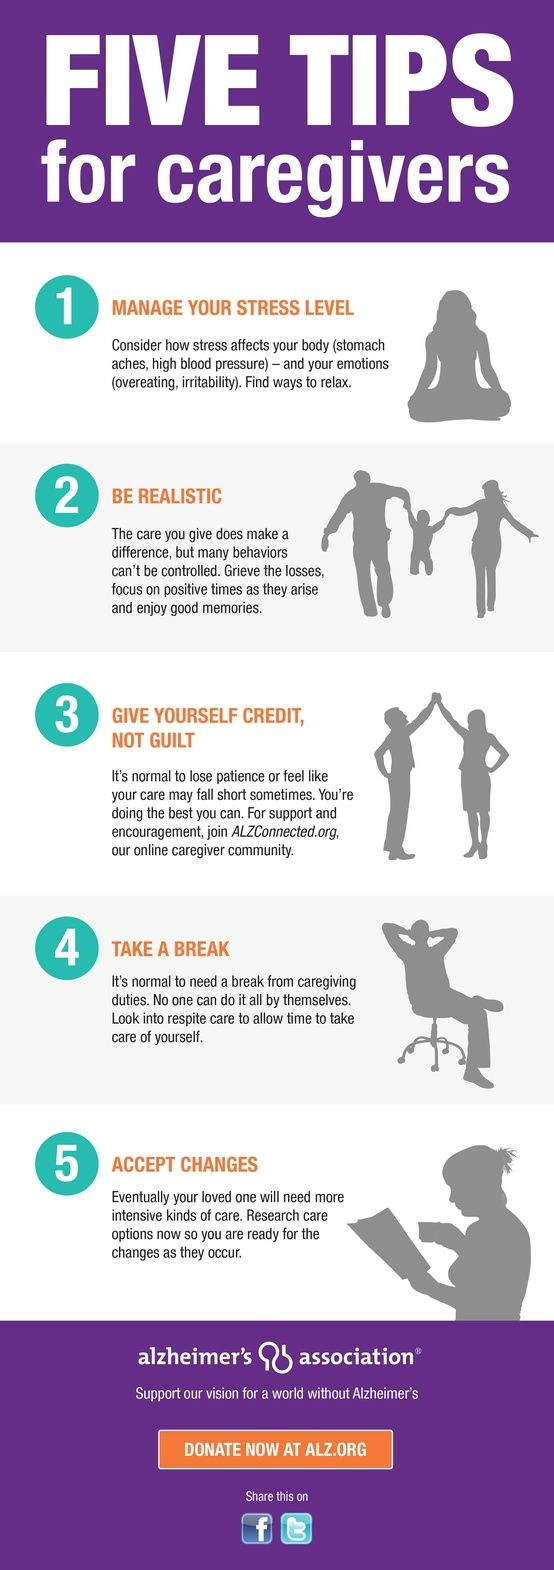 So, you have opted to take care of your loved one with Alzheimer's, or another debilitating disease, yourself. Very noble and loving, also very stressful. This poster shows some easy things to do to help manage stress, always remember, the caregiver needs loving care as well.